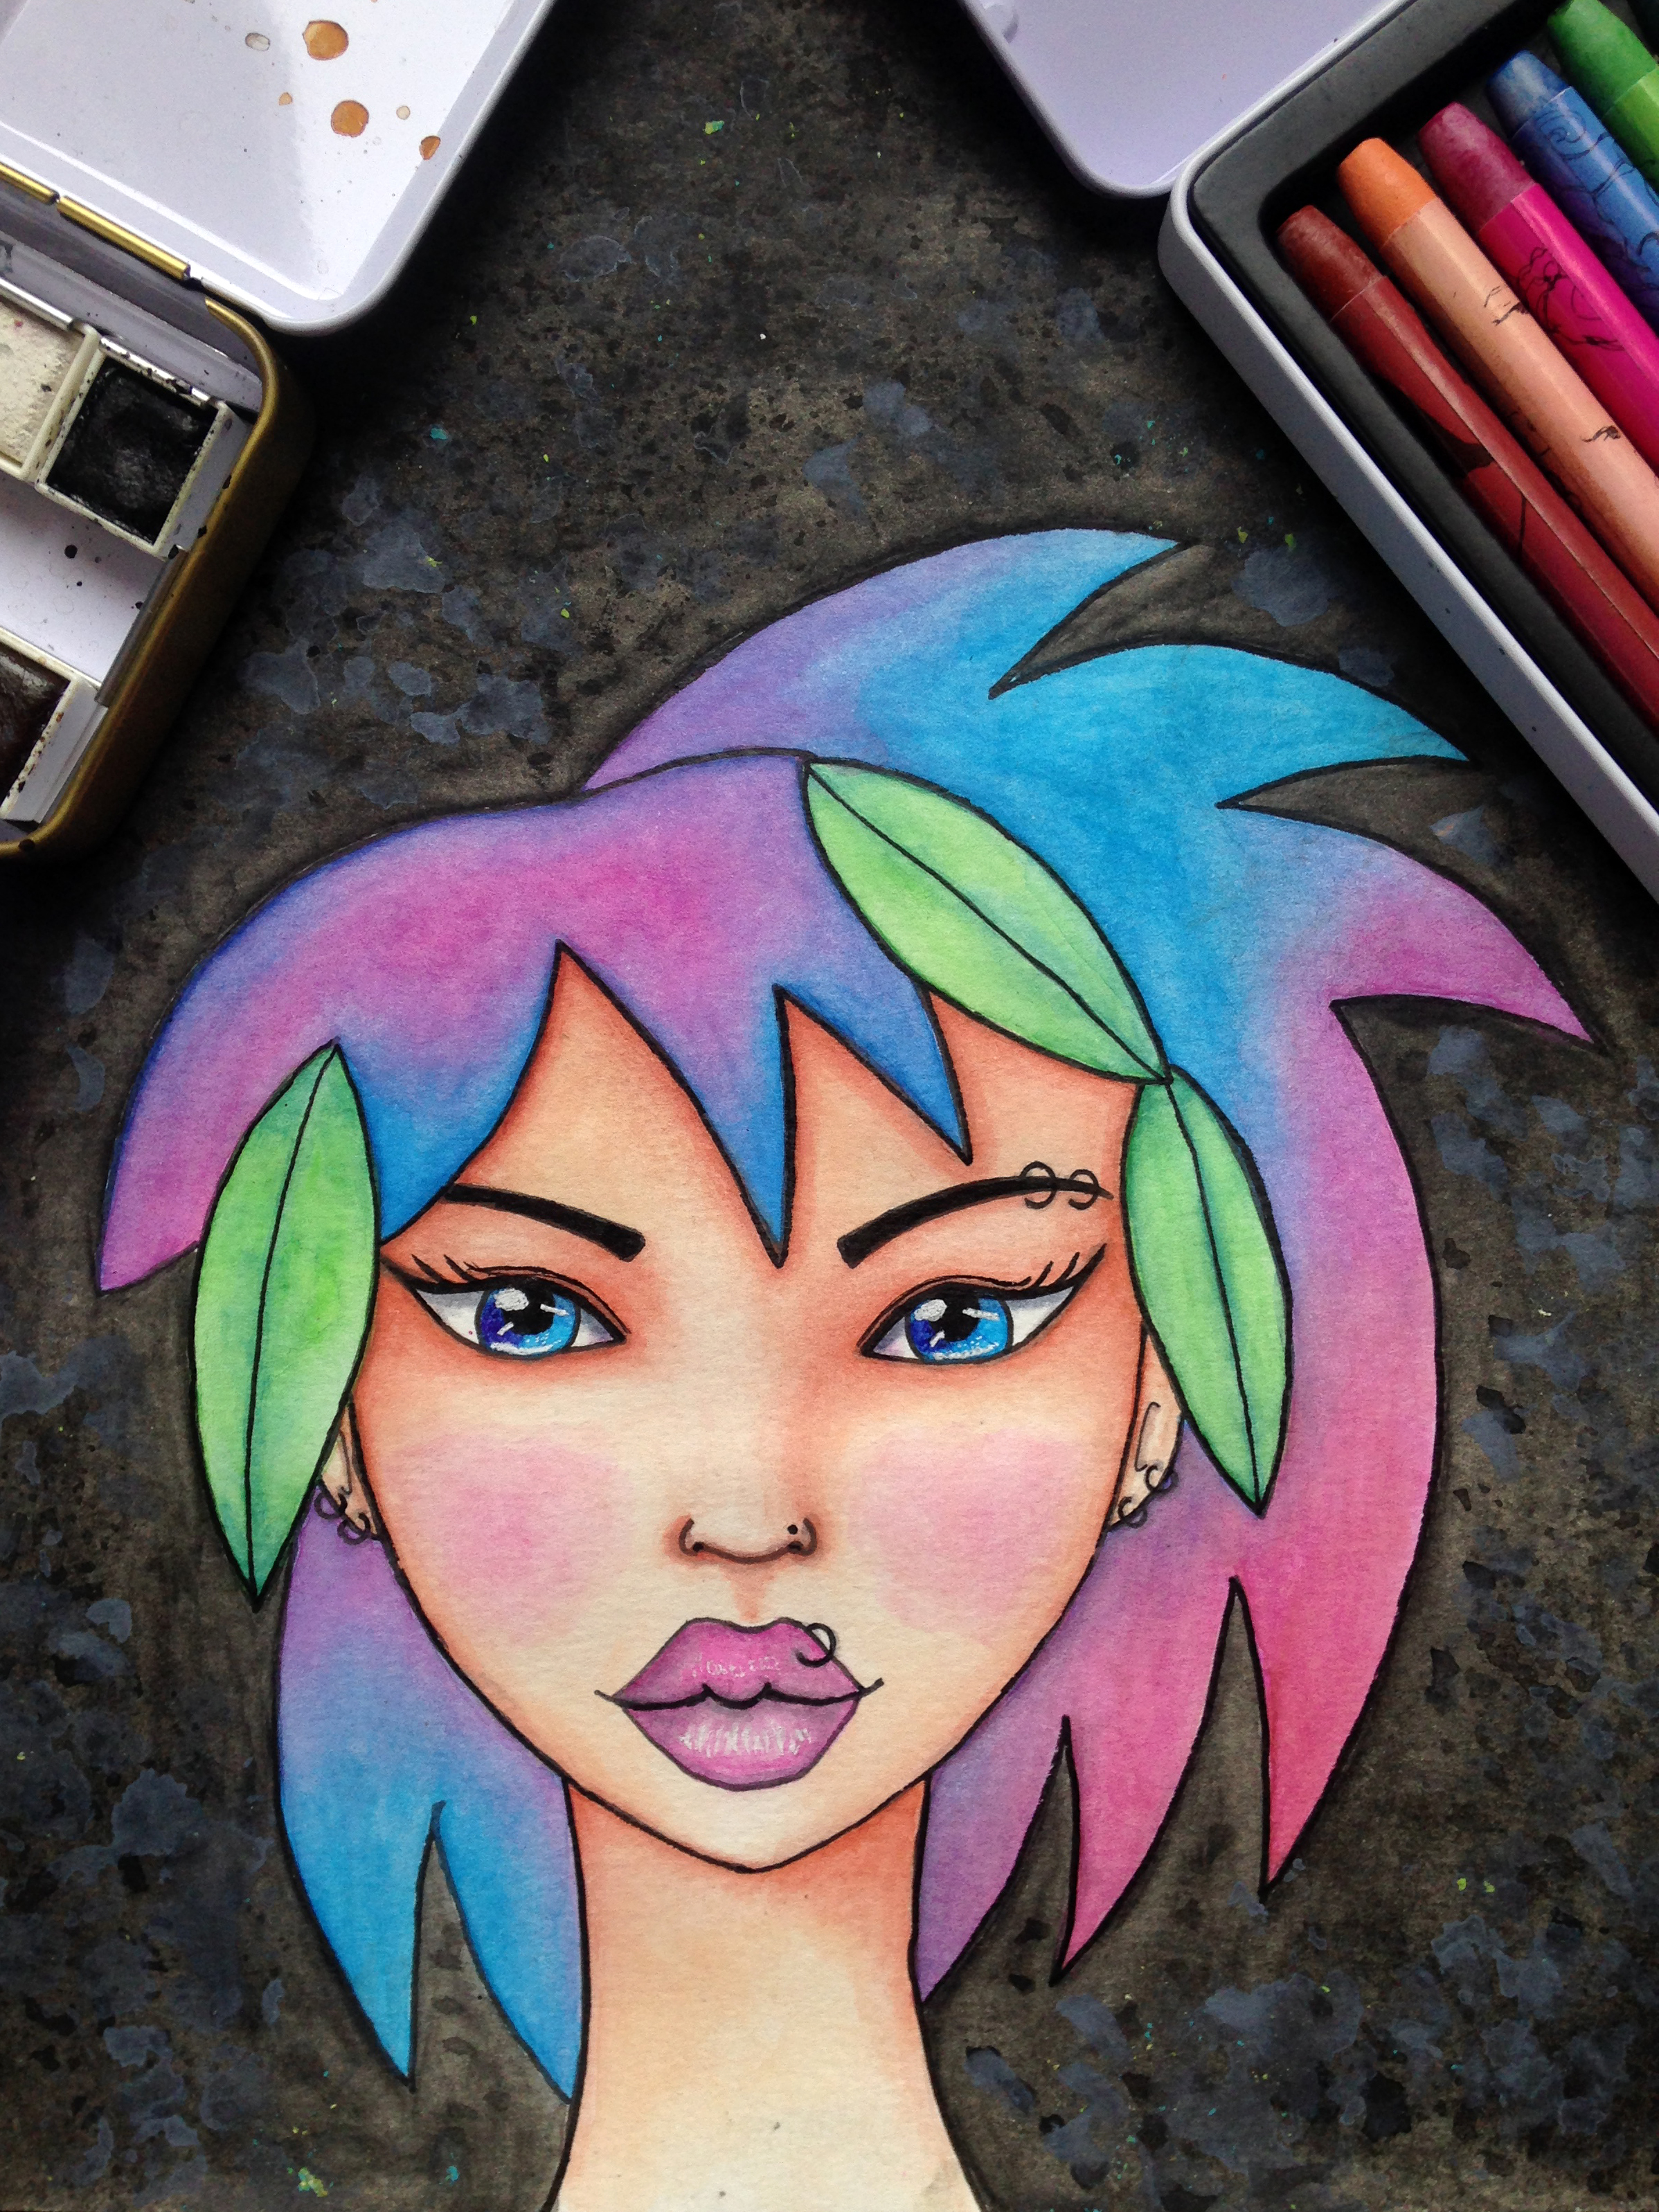 Fun Fab Face 4/100. Punk-Haired Girl With Facial Piercings. Artwork By Corrinna Johnson. 100 Fun Fab Faces Drawing Challenge Hosted By Karen Campbell.